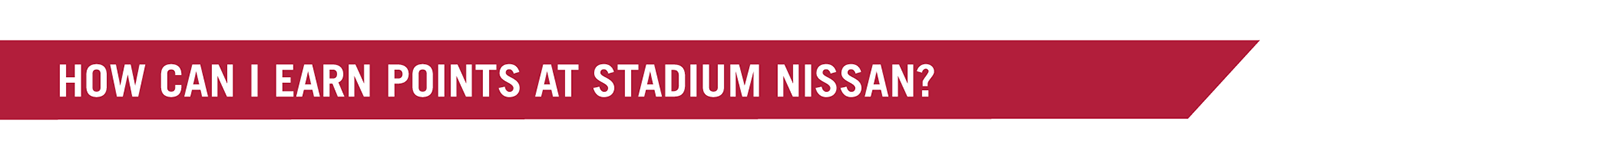 How Can I Earn Points at Stadium Nissan?